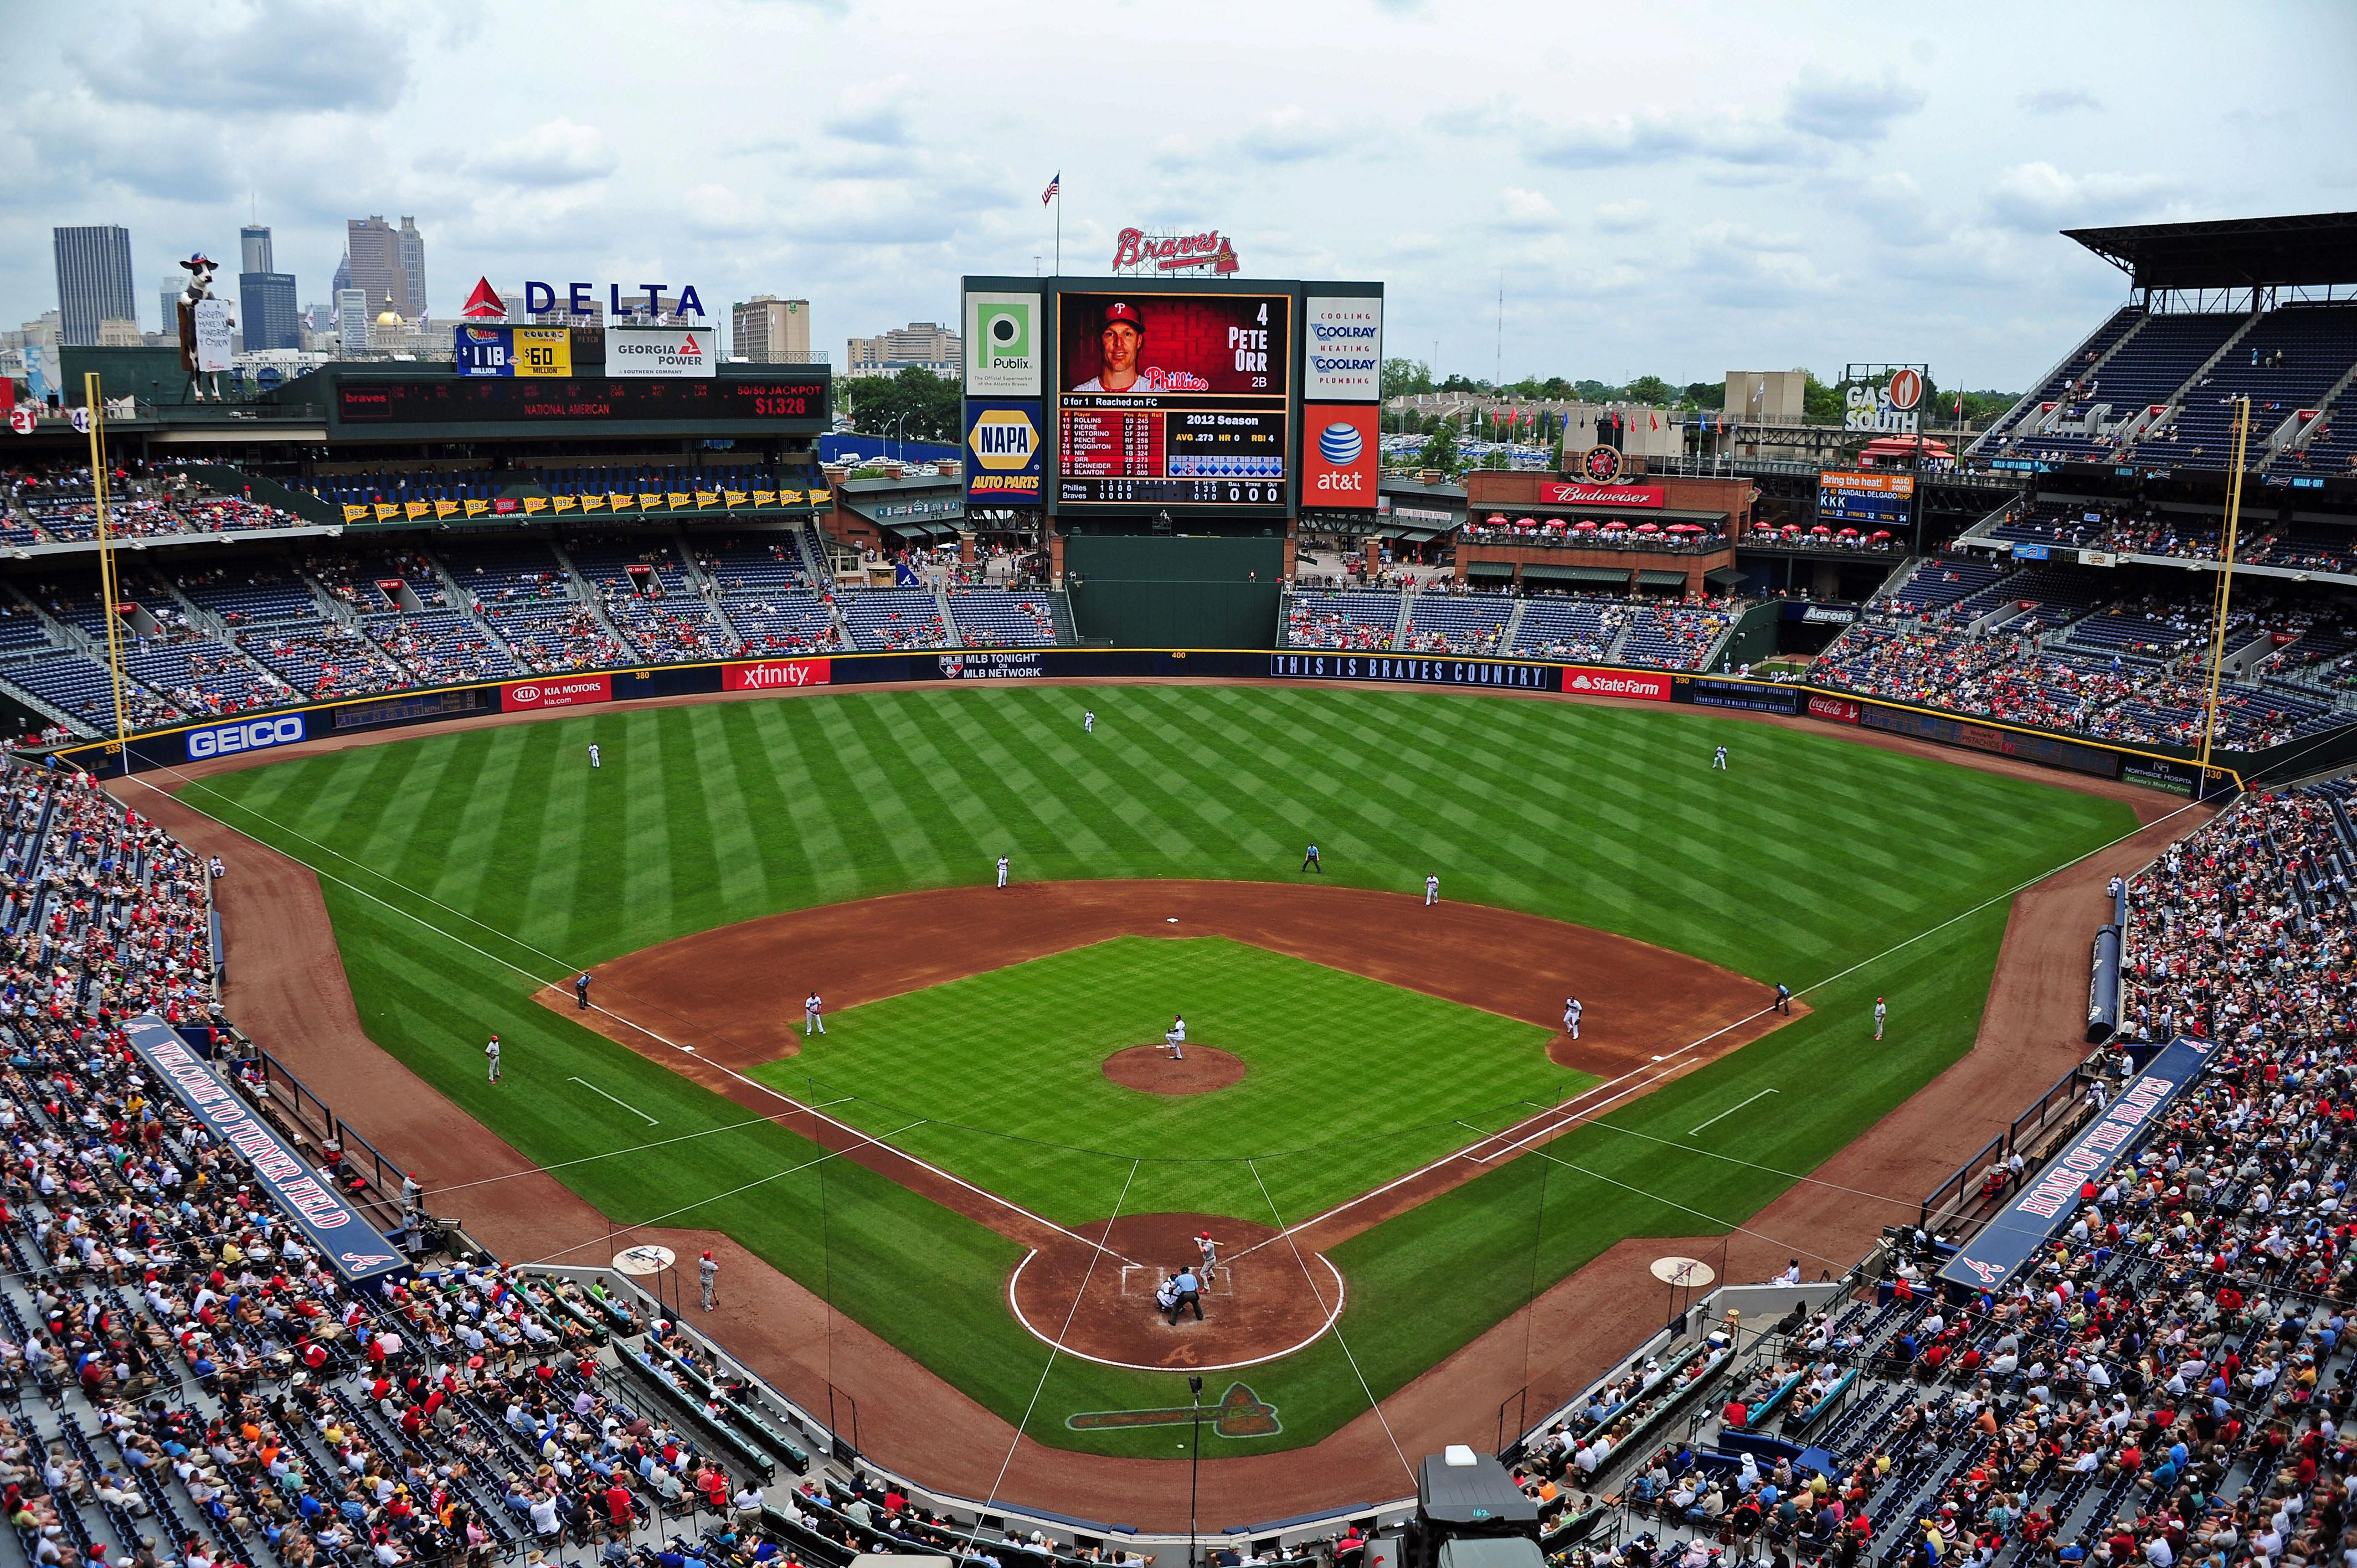 Fan guide to SunTrust Park: Where to park, eat and play